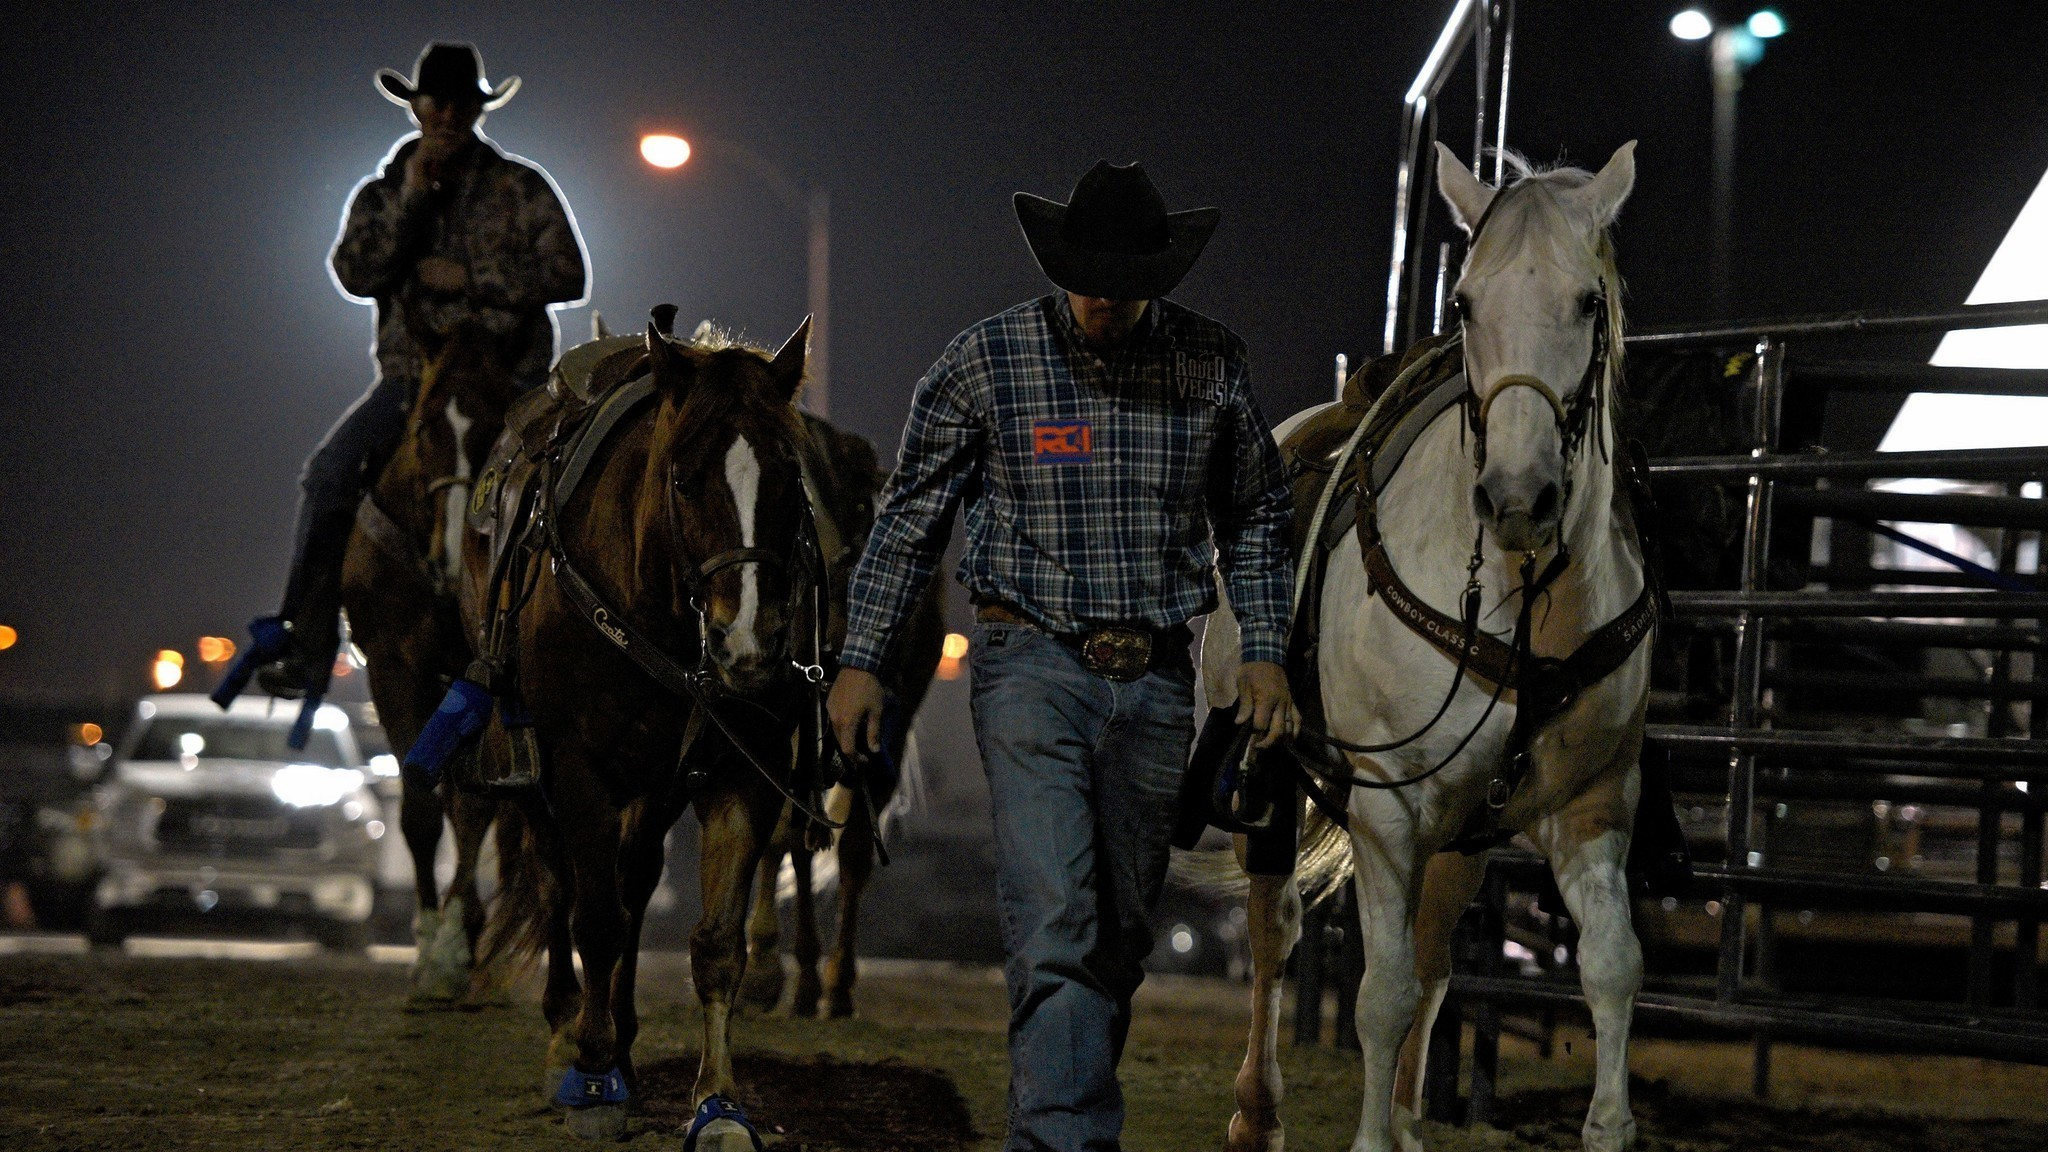 Las Vegas Welcomes Cowboys And All Things Country During